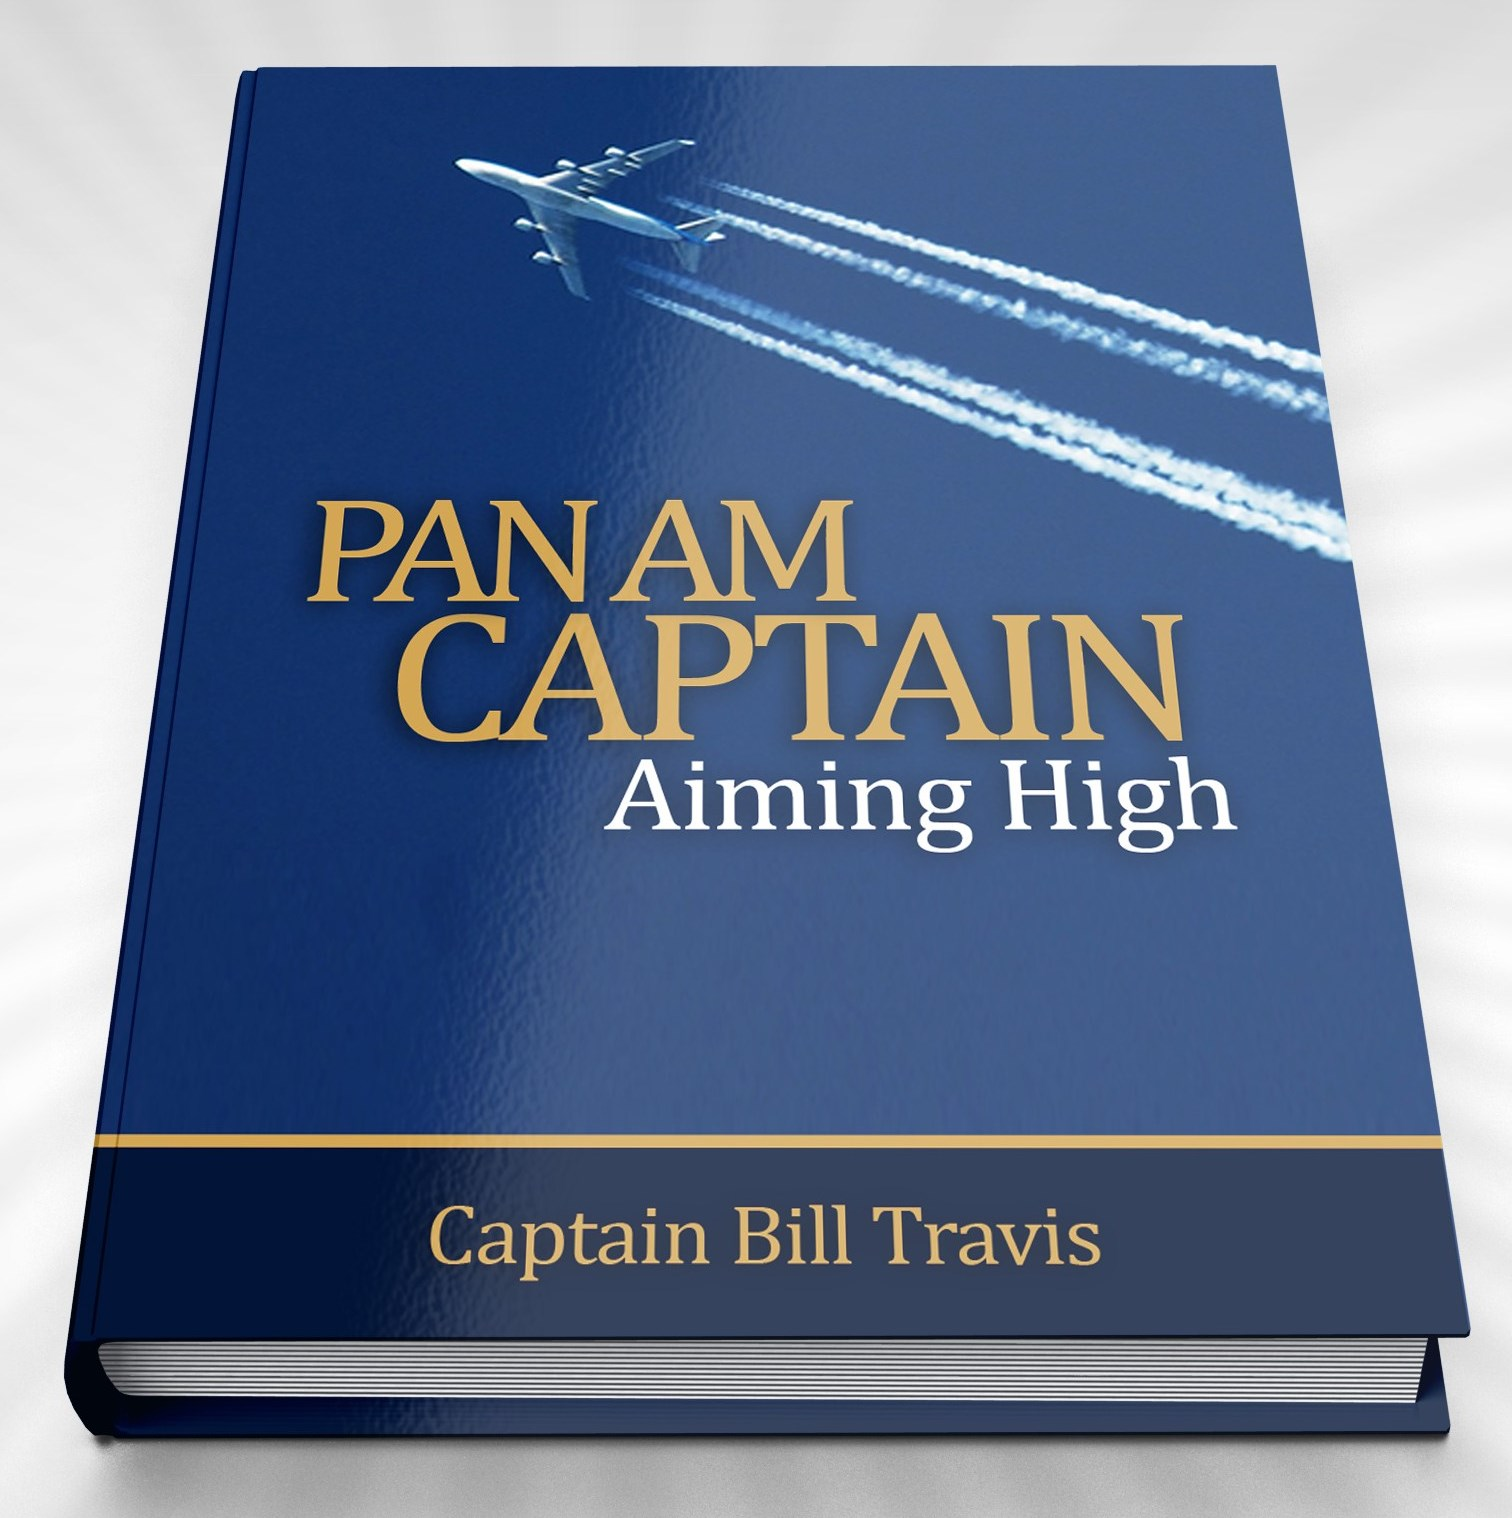 Pan Am Captain, Aiming High book cover